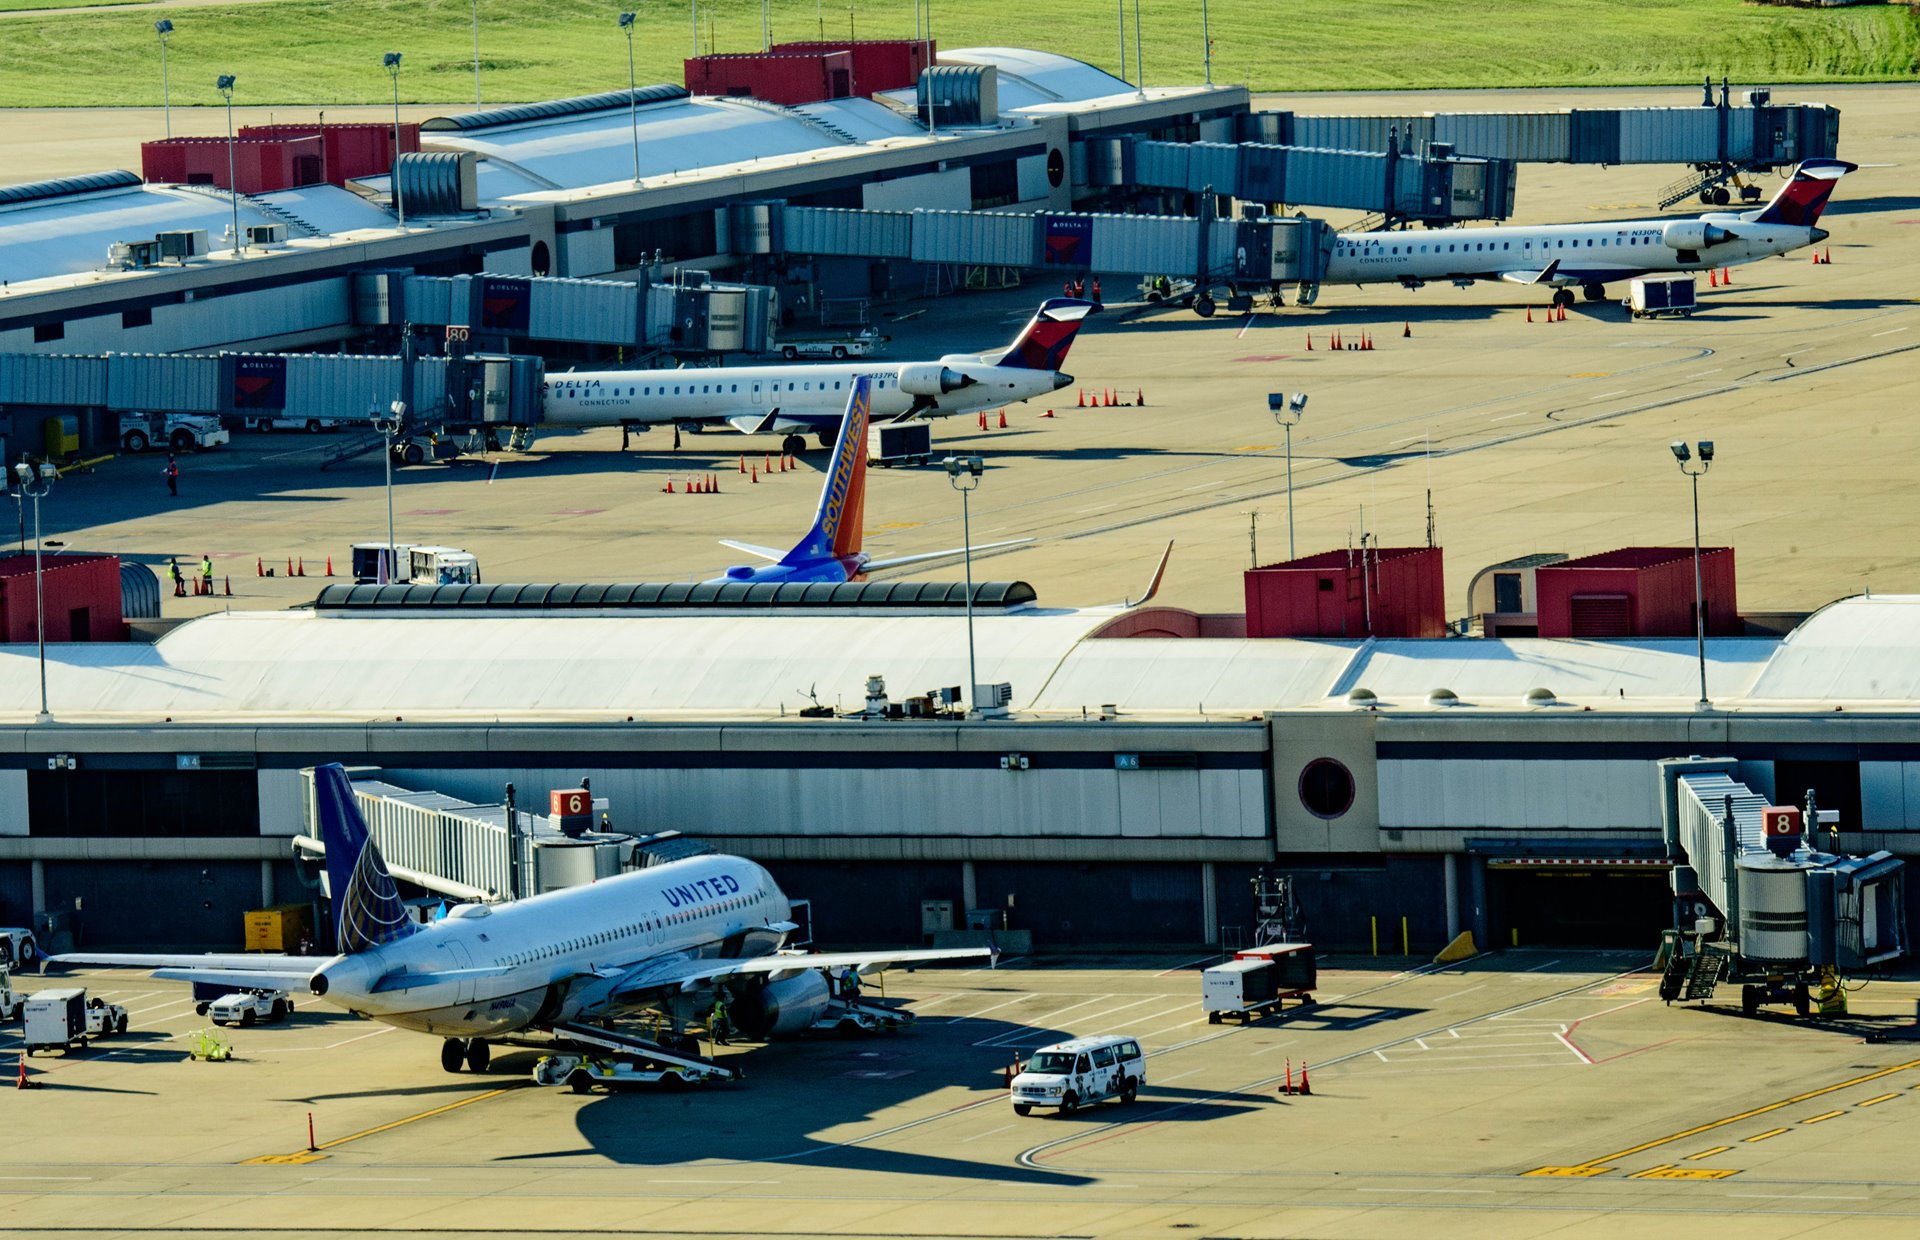 PASSENGER TRAFFIC AT PITTSBURGH INTERNATIONAL AIRPORT UP 8.2 PERCENT IN 2017